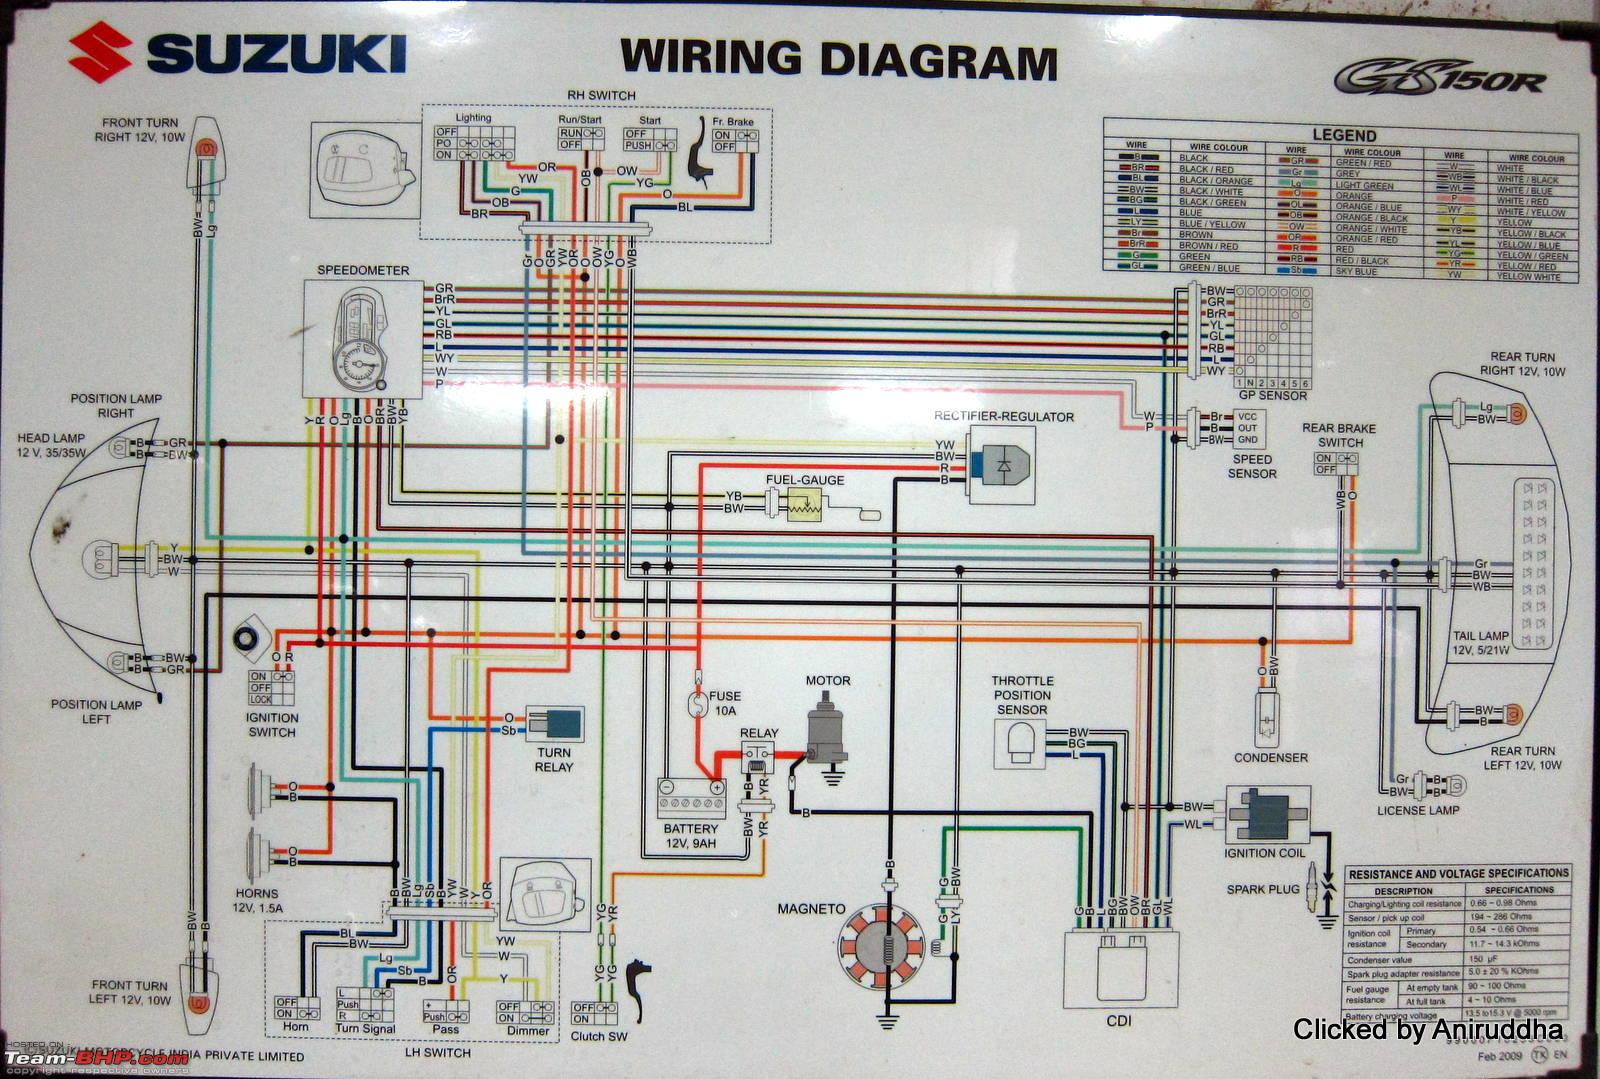 hight resolution of suzuki en 125 wiring diagram wiring diagramsuzuki 125 wiring diagram wiring diagram listsuzuki 125 wiring diagram